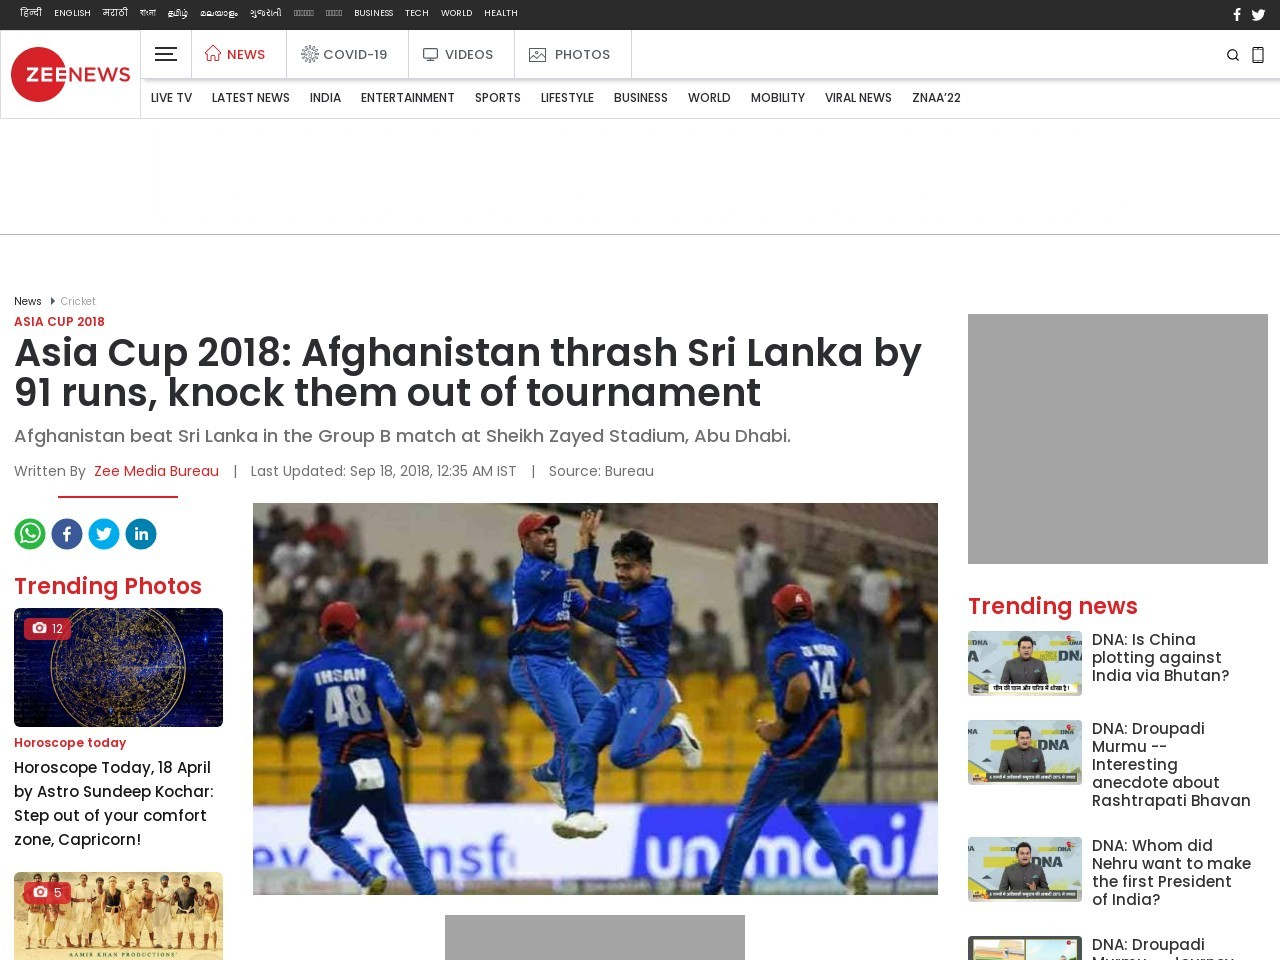 Asia Cup 2018: Afghanistan thrash Sri Lanka by 91 runs, knock them out of tournament